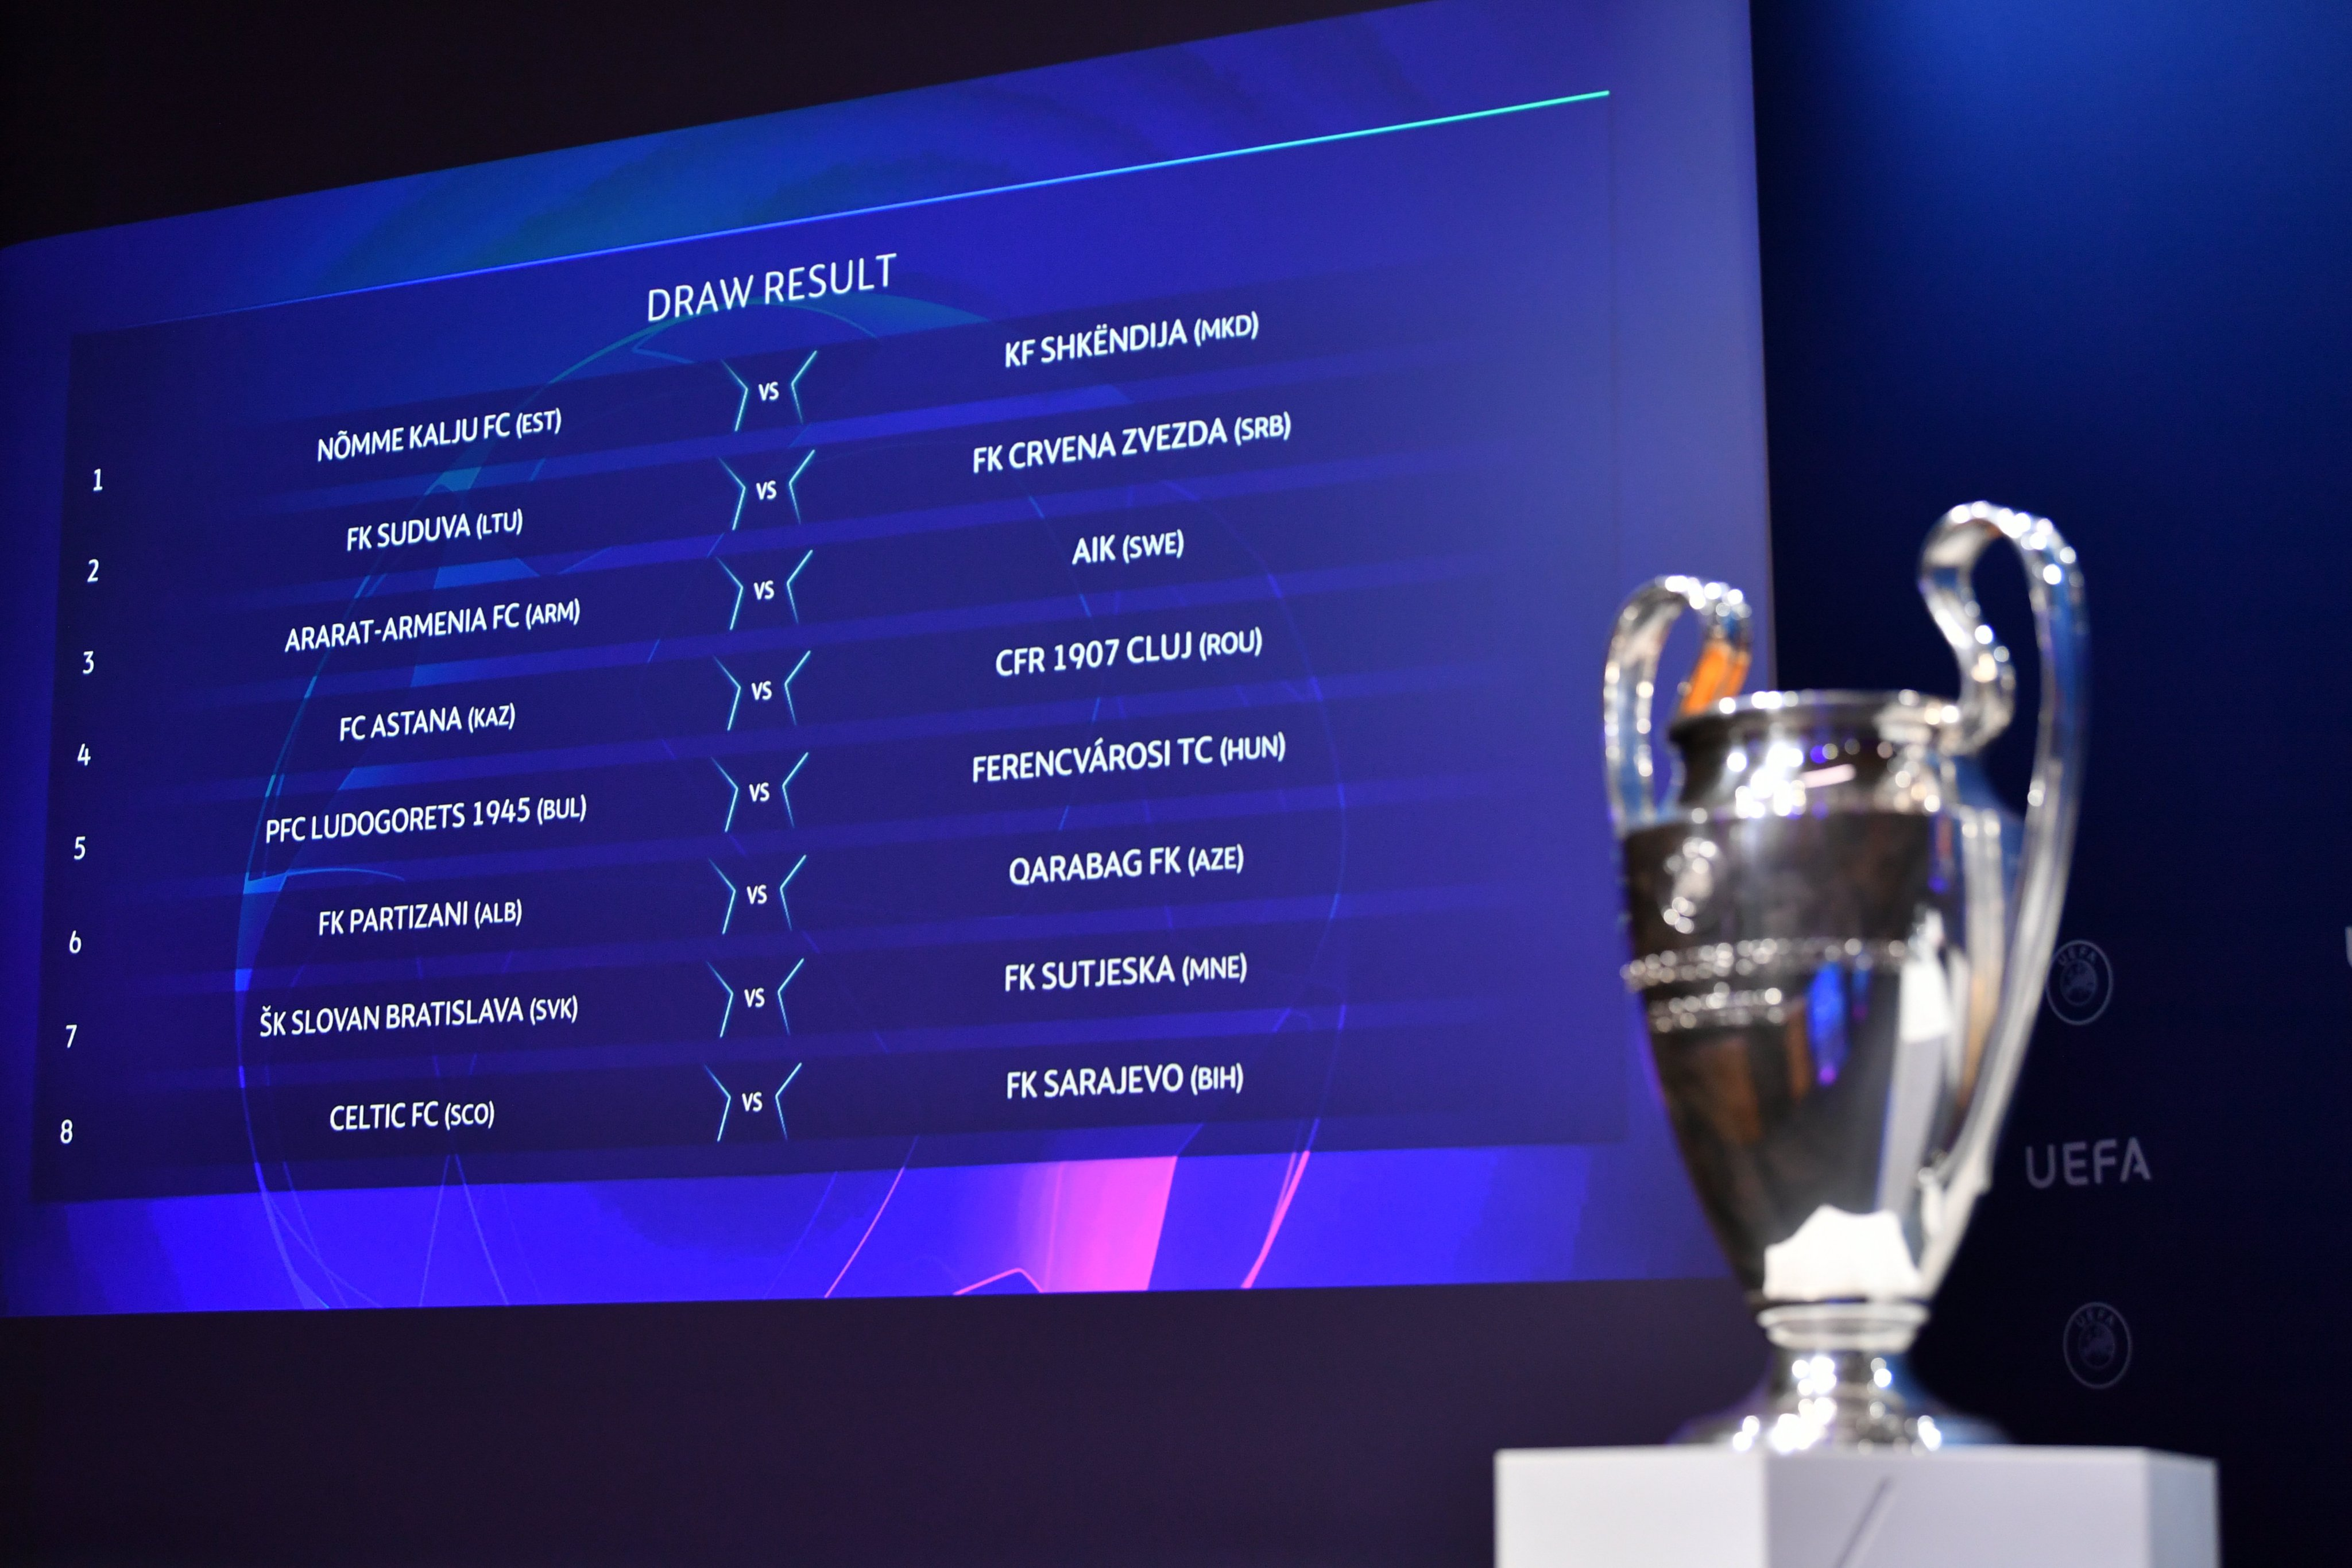 Calendario Champions League 2021 Quarti Di Finale Calendario Champions League 2020 2021: gironi e tabellone | Goal.com